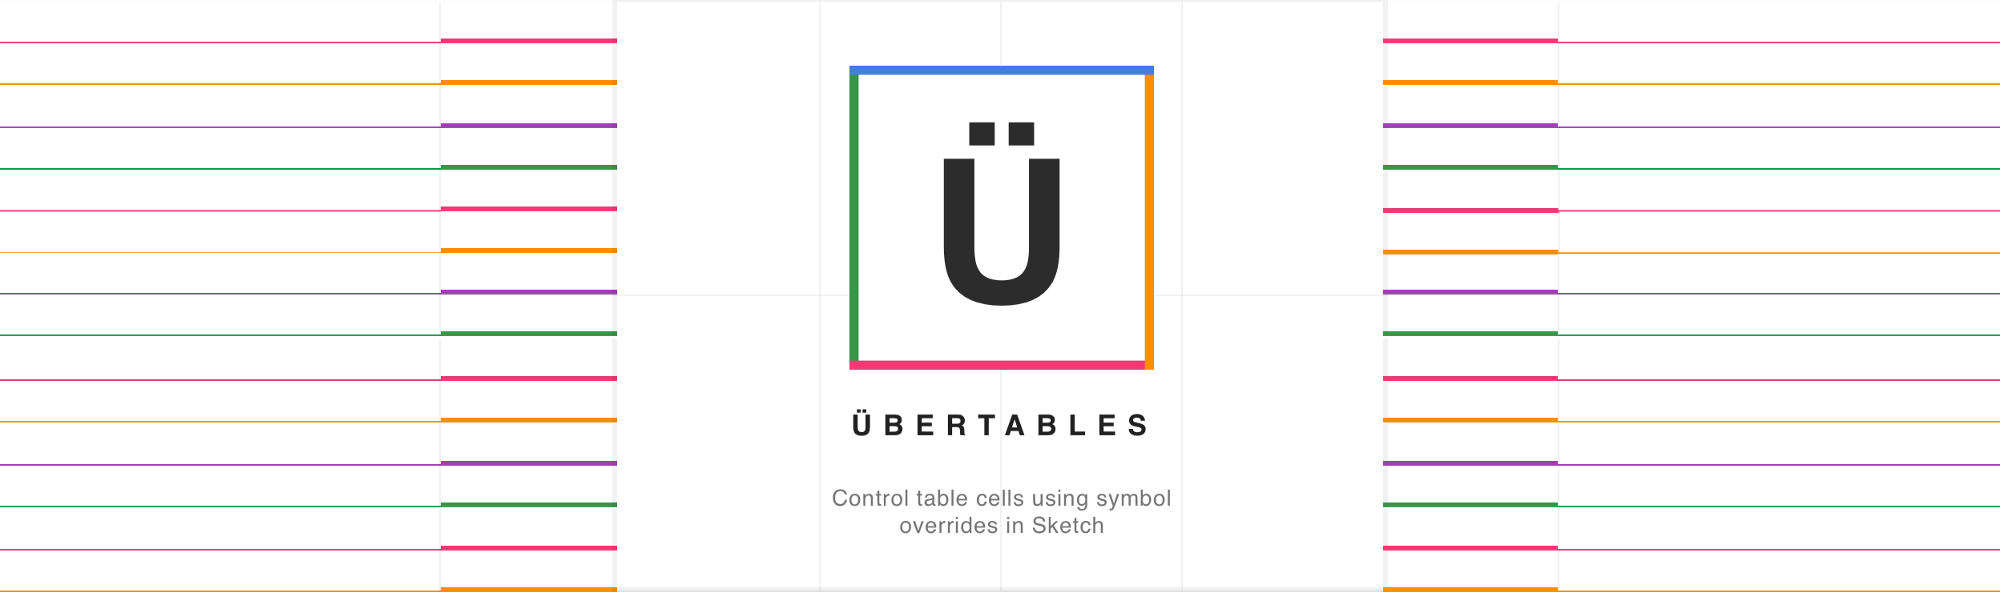 Use symbol overrides to control borders in sketch with ber tables this header was created using uber table master cells with symbol overrides buycottarizona